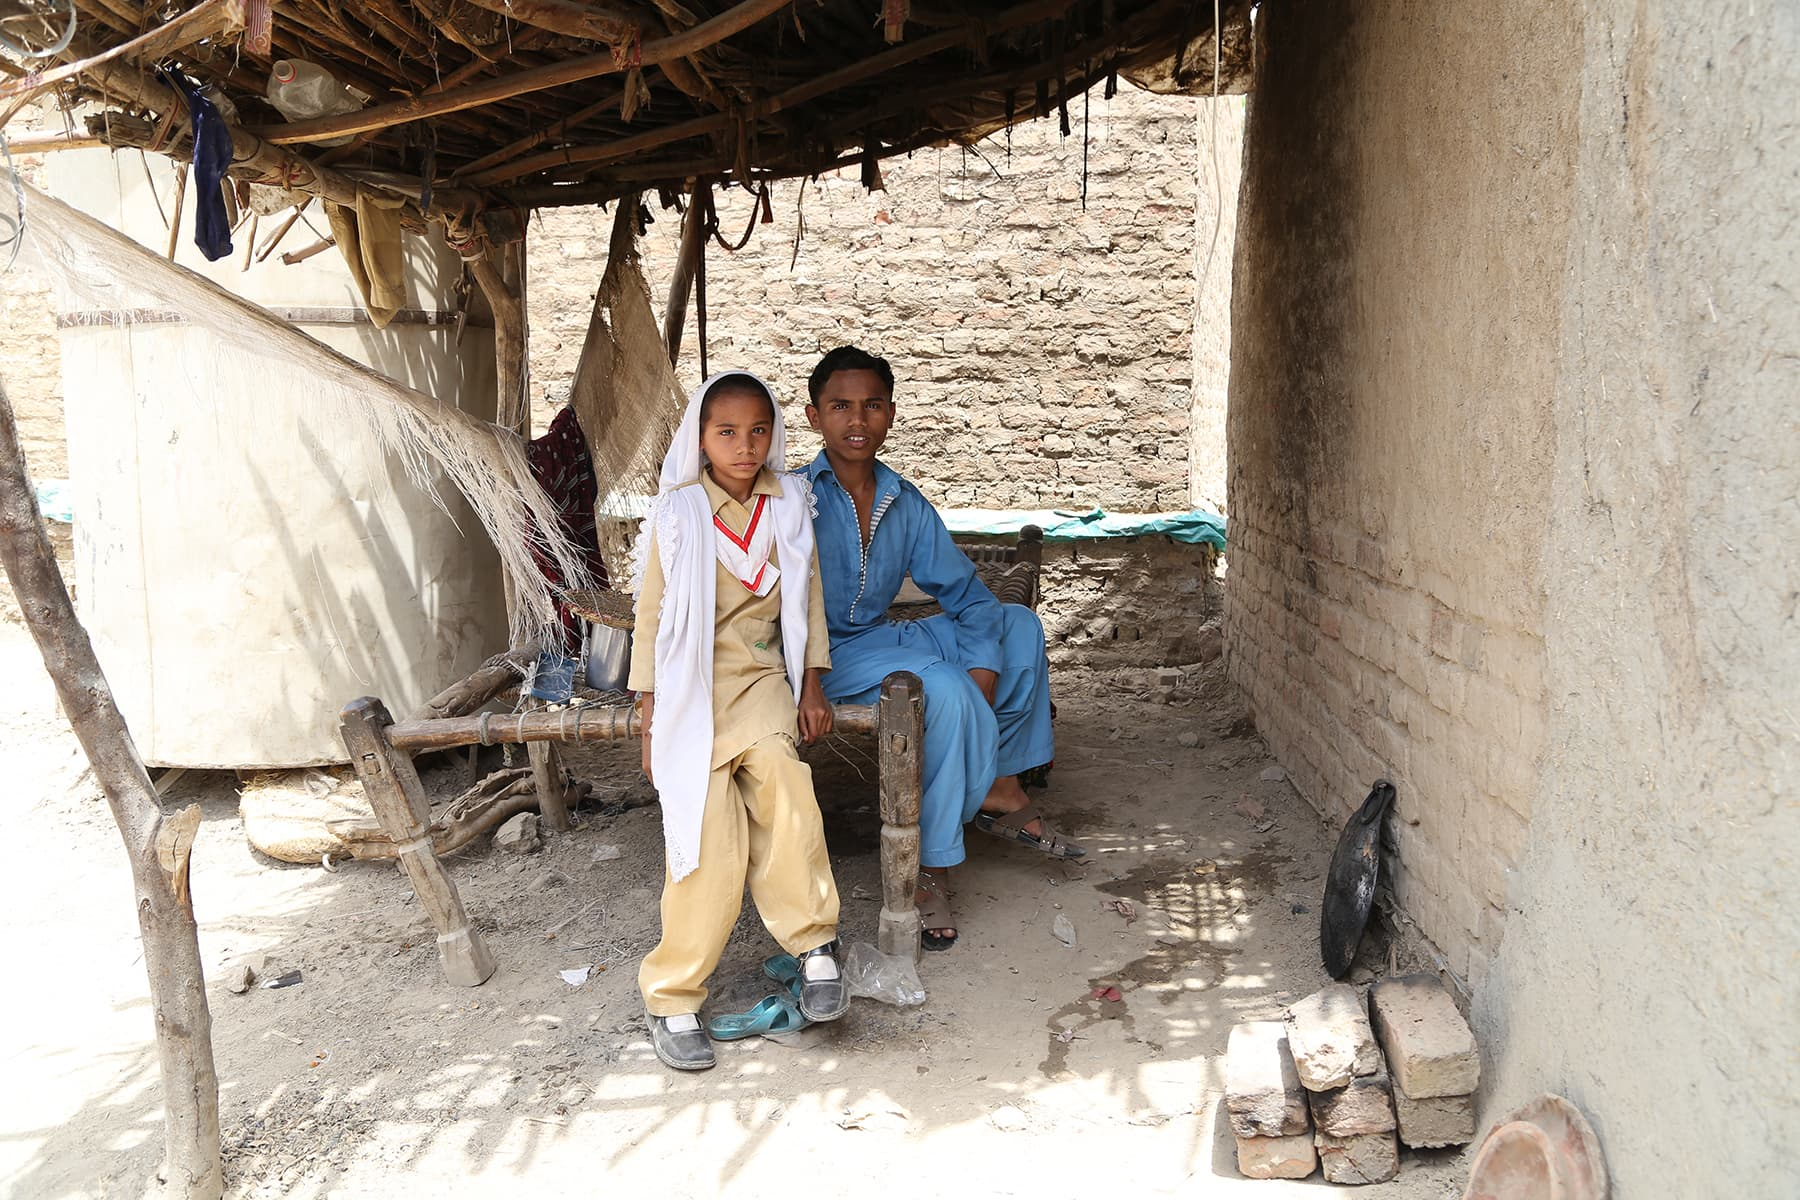 Khalil Ahmed pictured with his sister at his home in Gambat. - Photo by Mustafa Ilyas